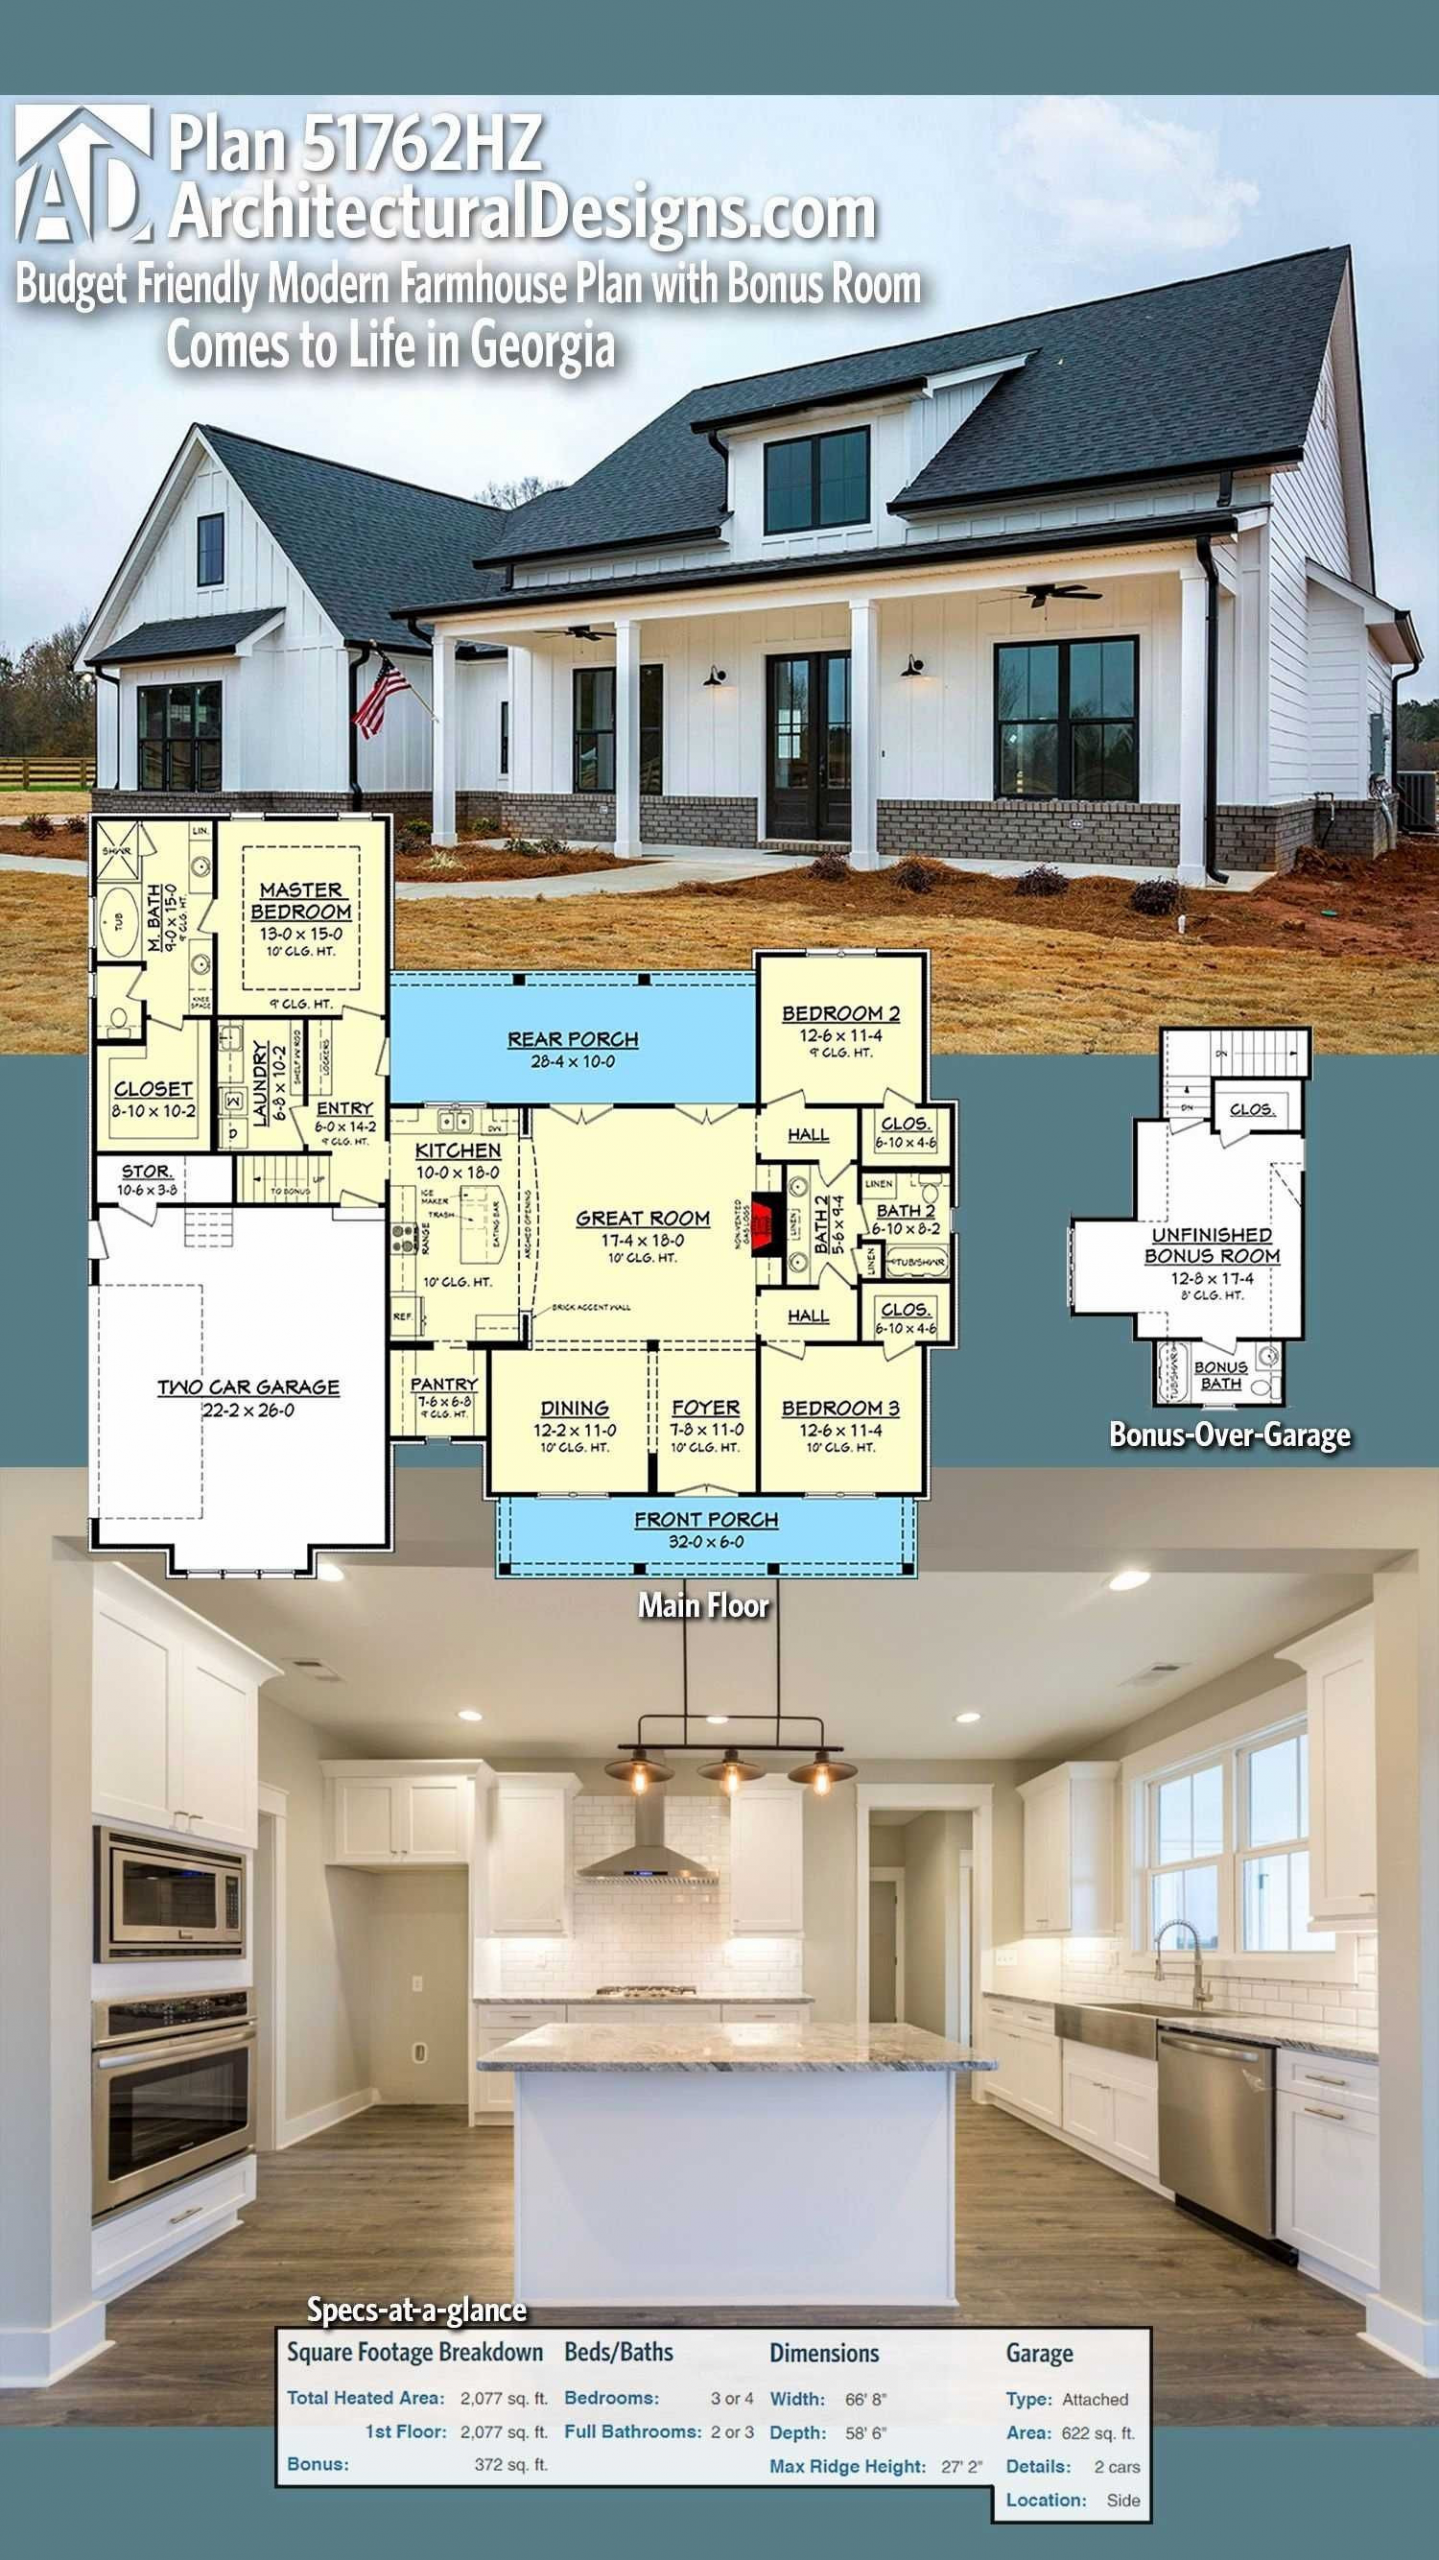 Farmhouse Style House Plans Open Floor One Story Awesome Open Concept Single Story Farm In 2020 Modern Farmhouse Floorplan Modern Farmhouse Plans House Plans Farmhouse